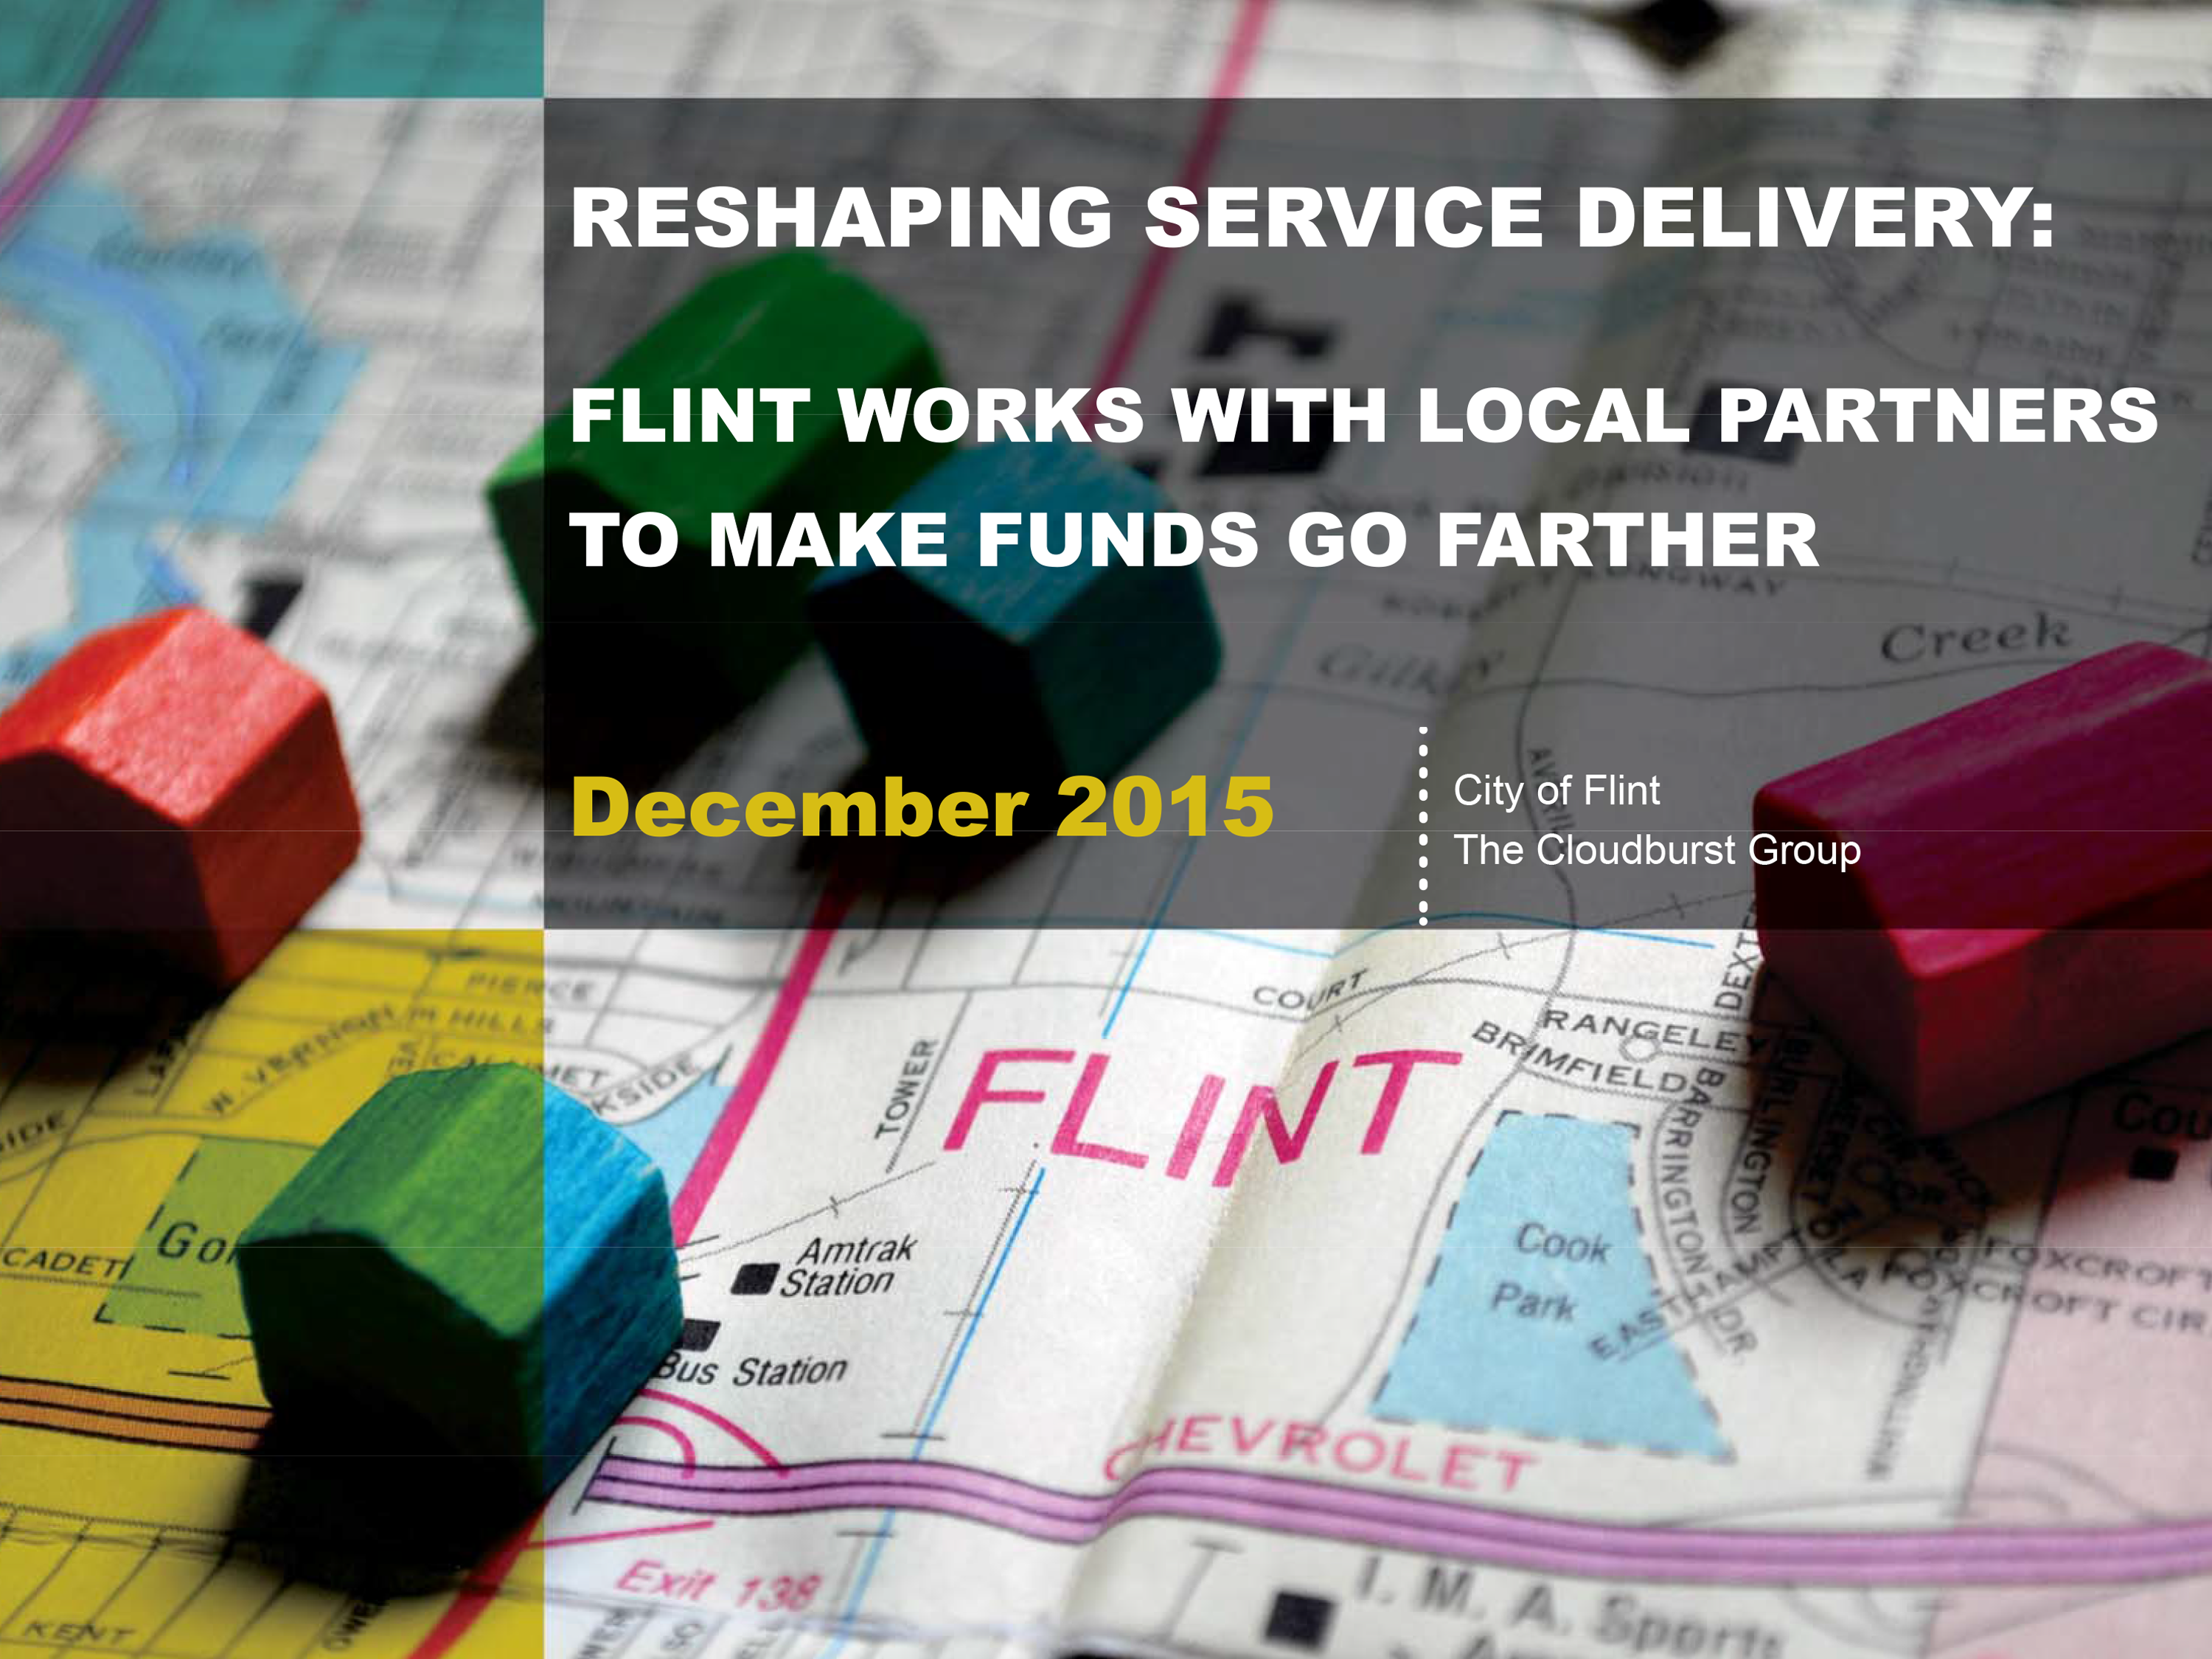 City of Flint__Case Study_FINAL 4-17-15-1